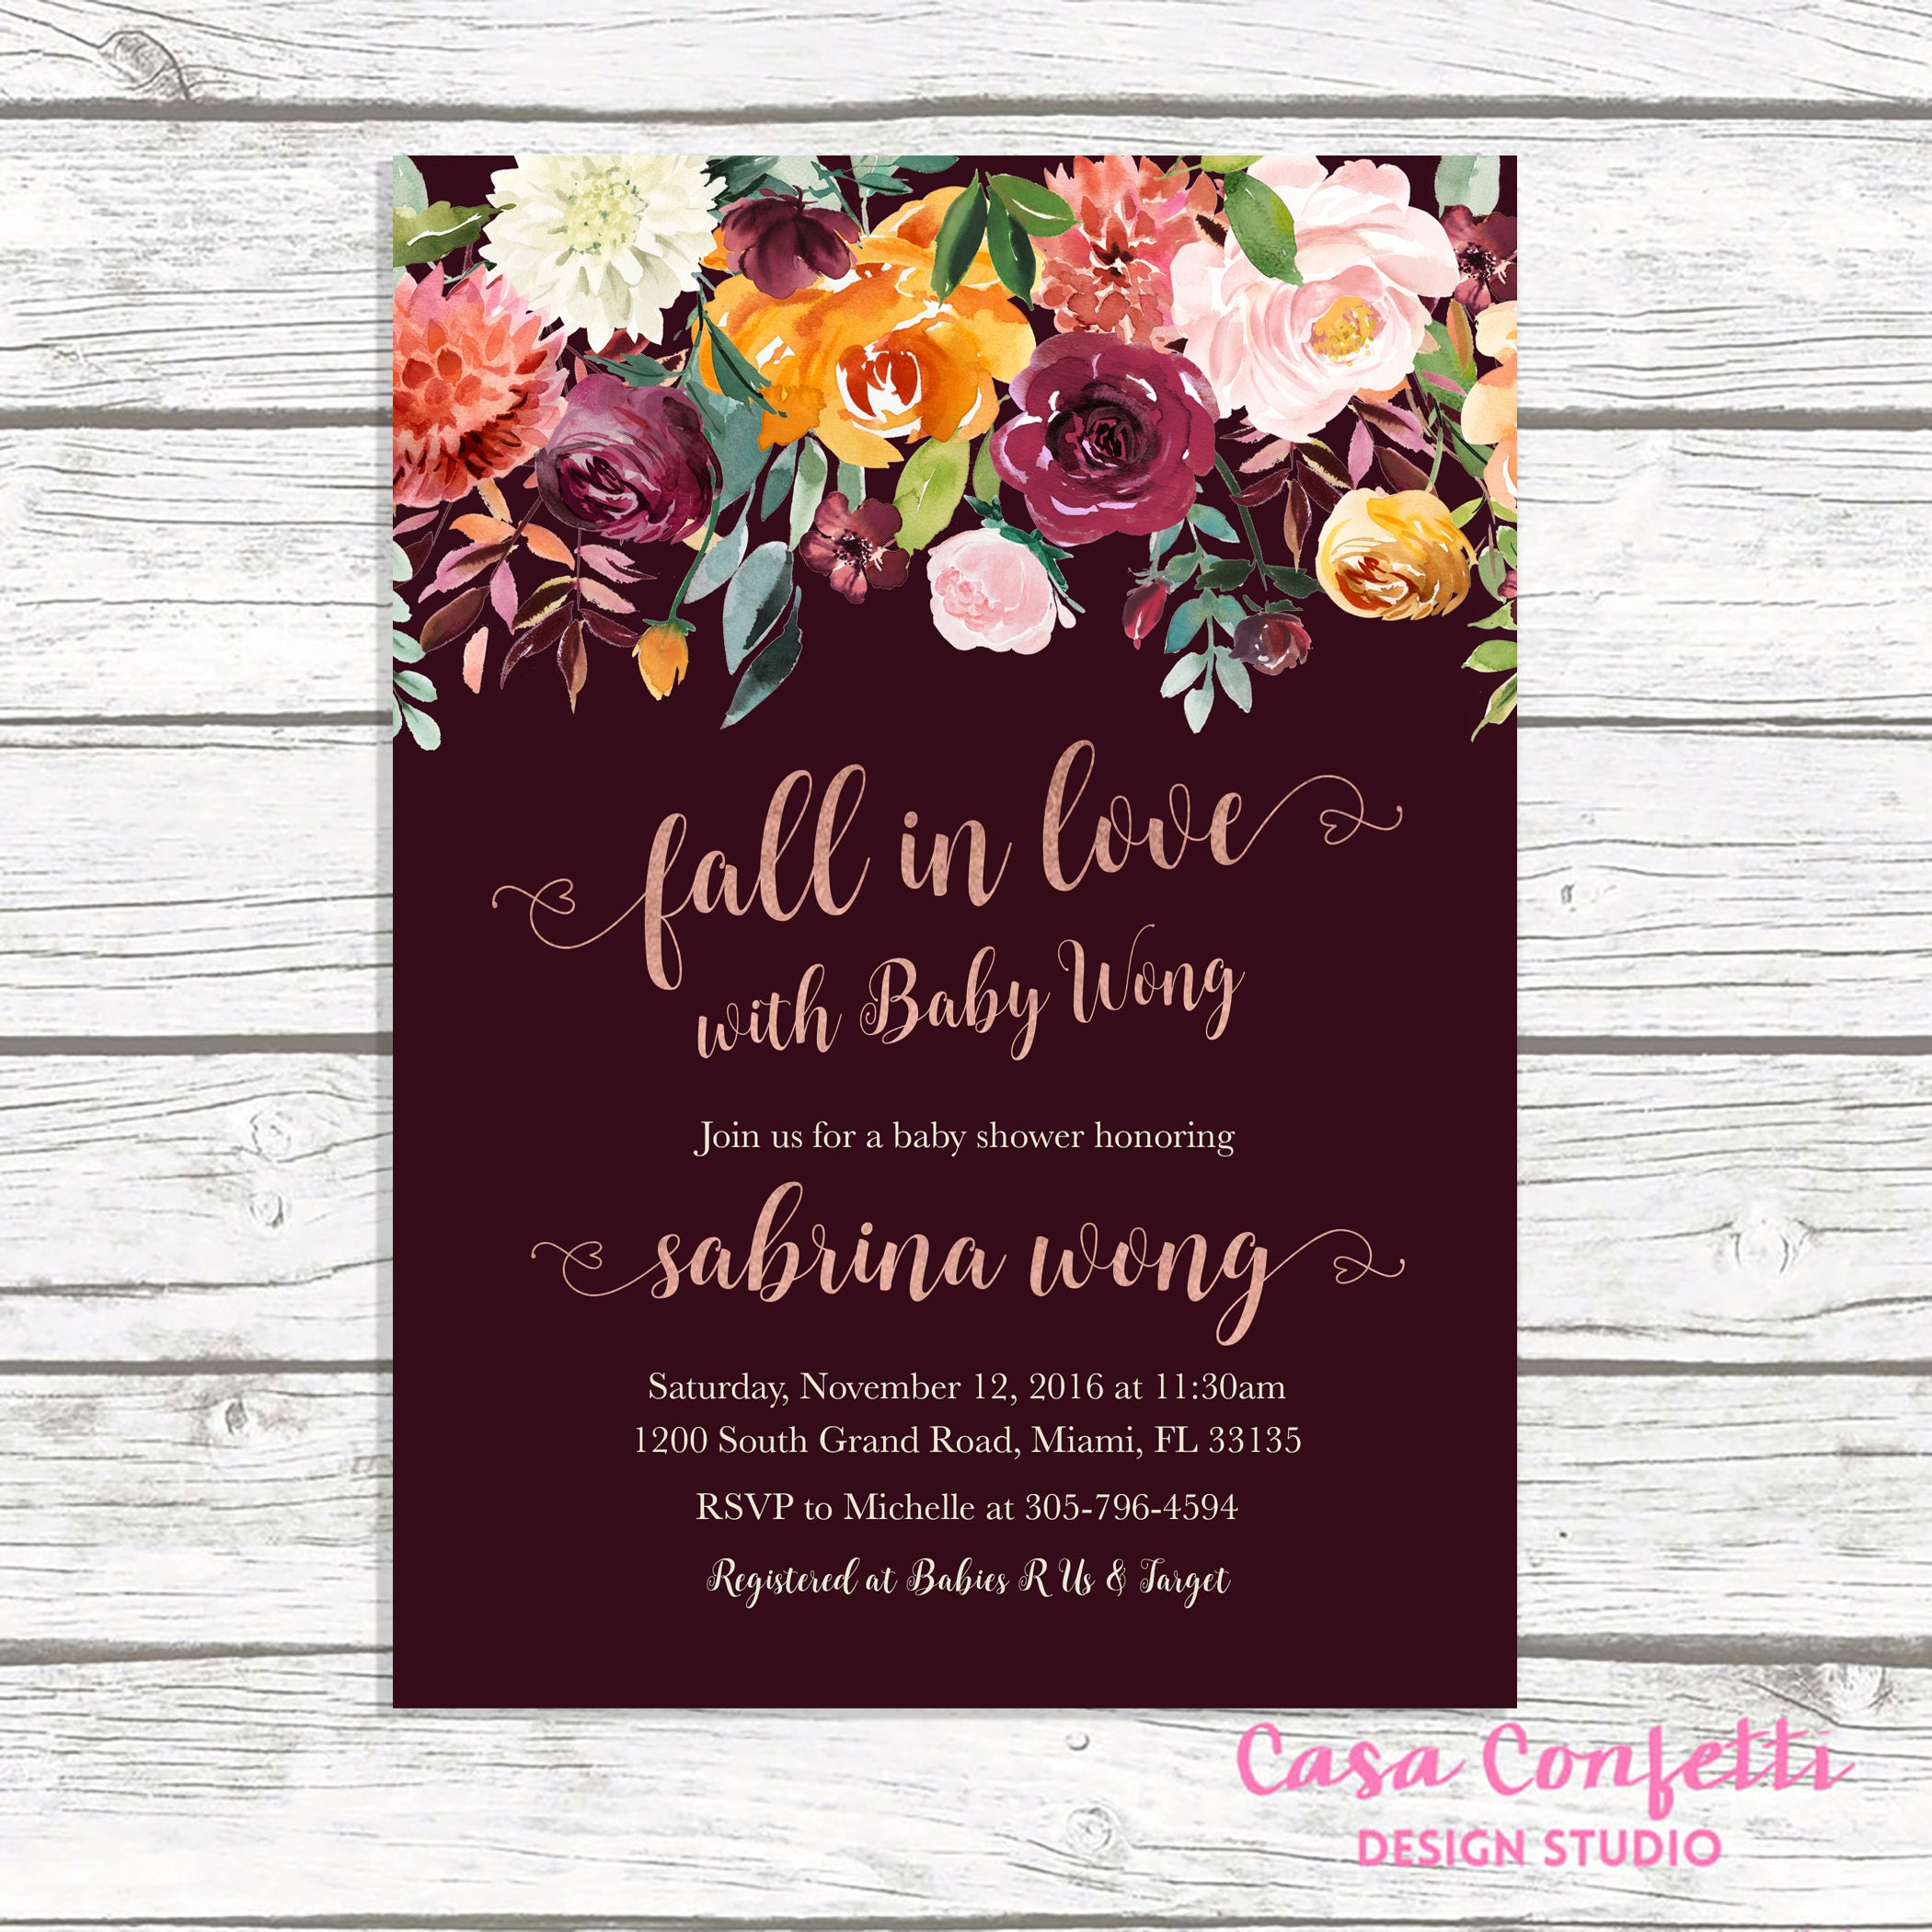 Rustic Fall Baby Shower Invitation Fall in Love Baby Shower